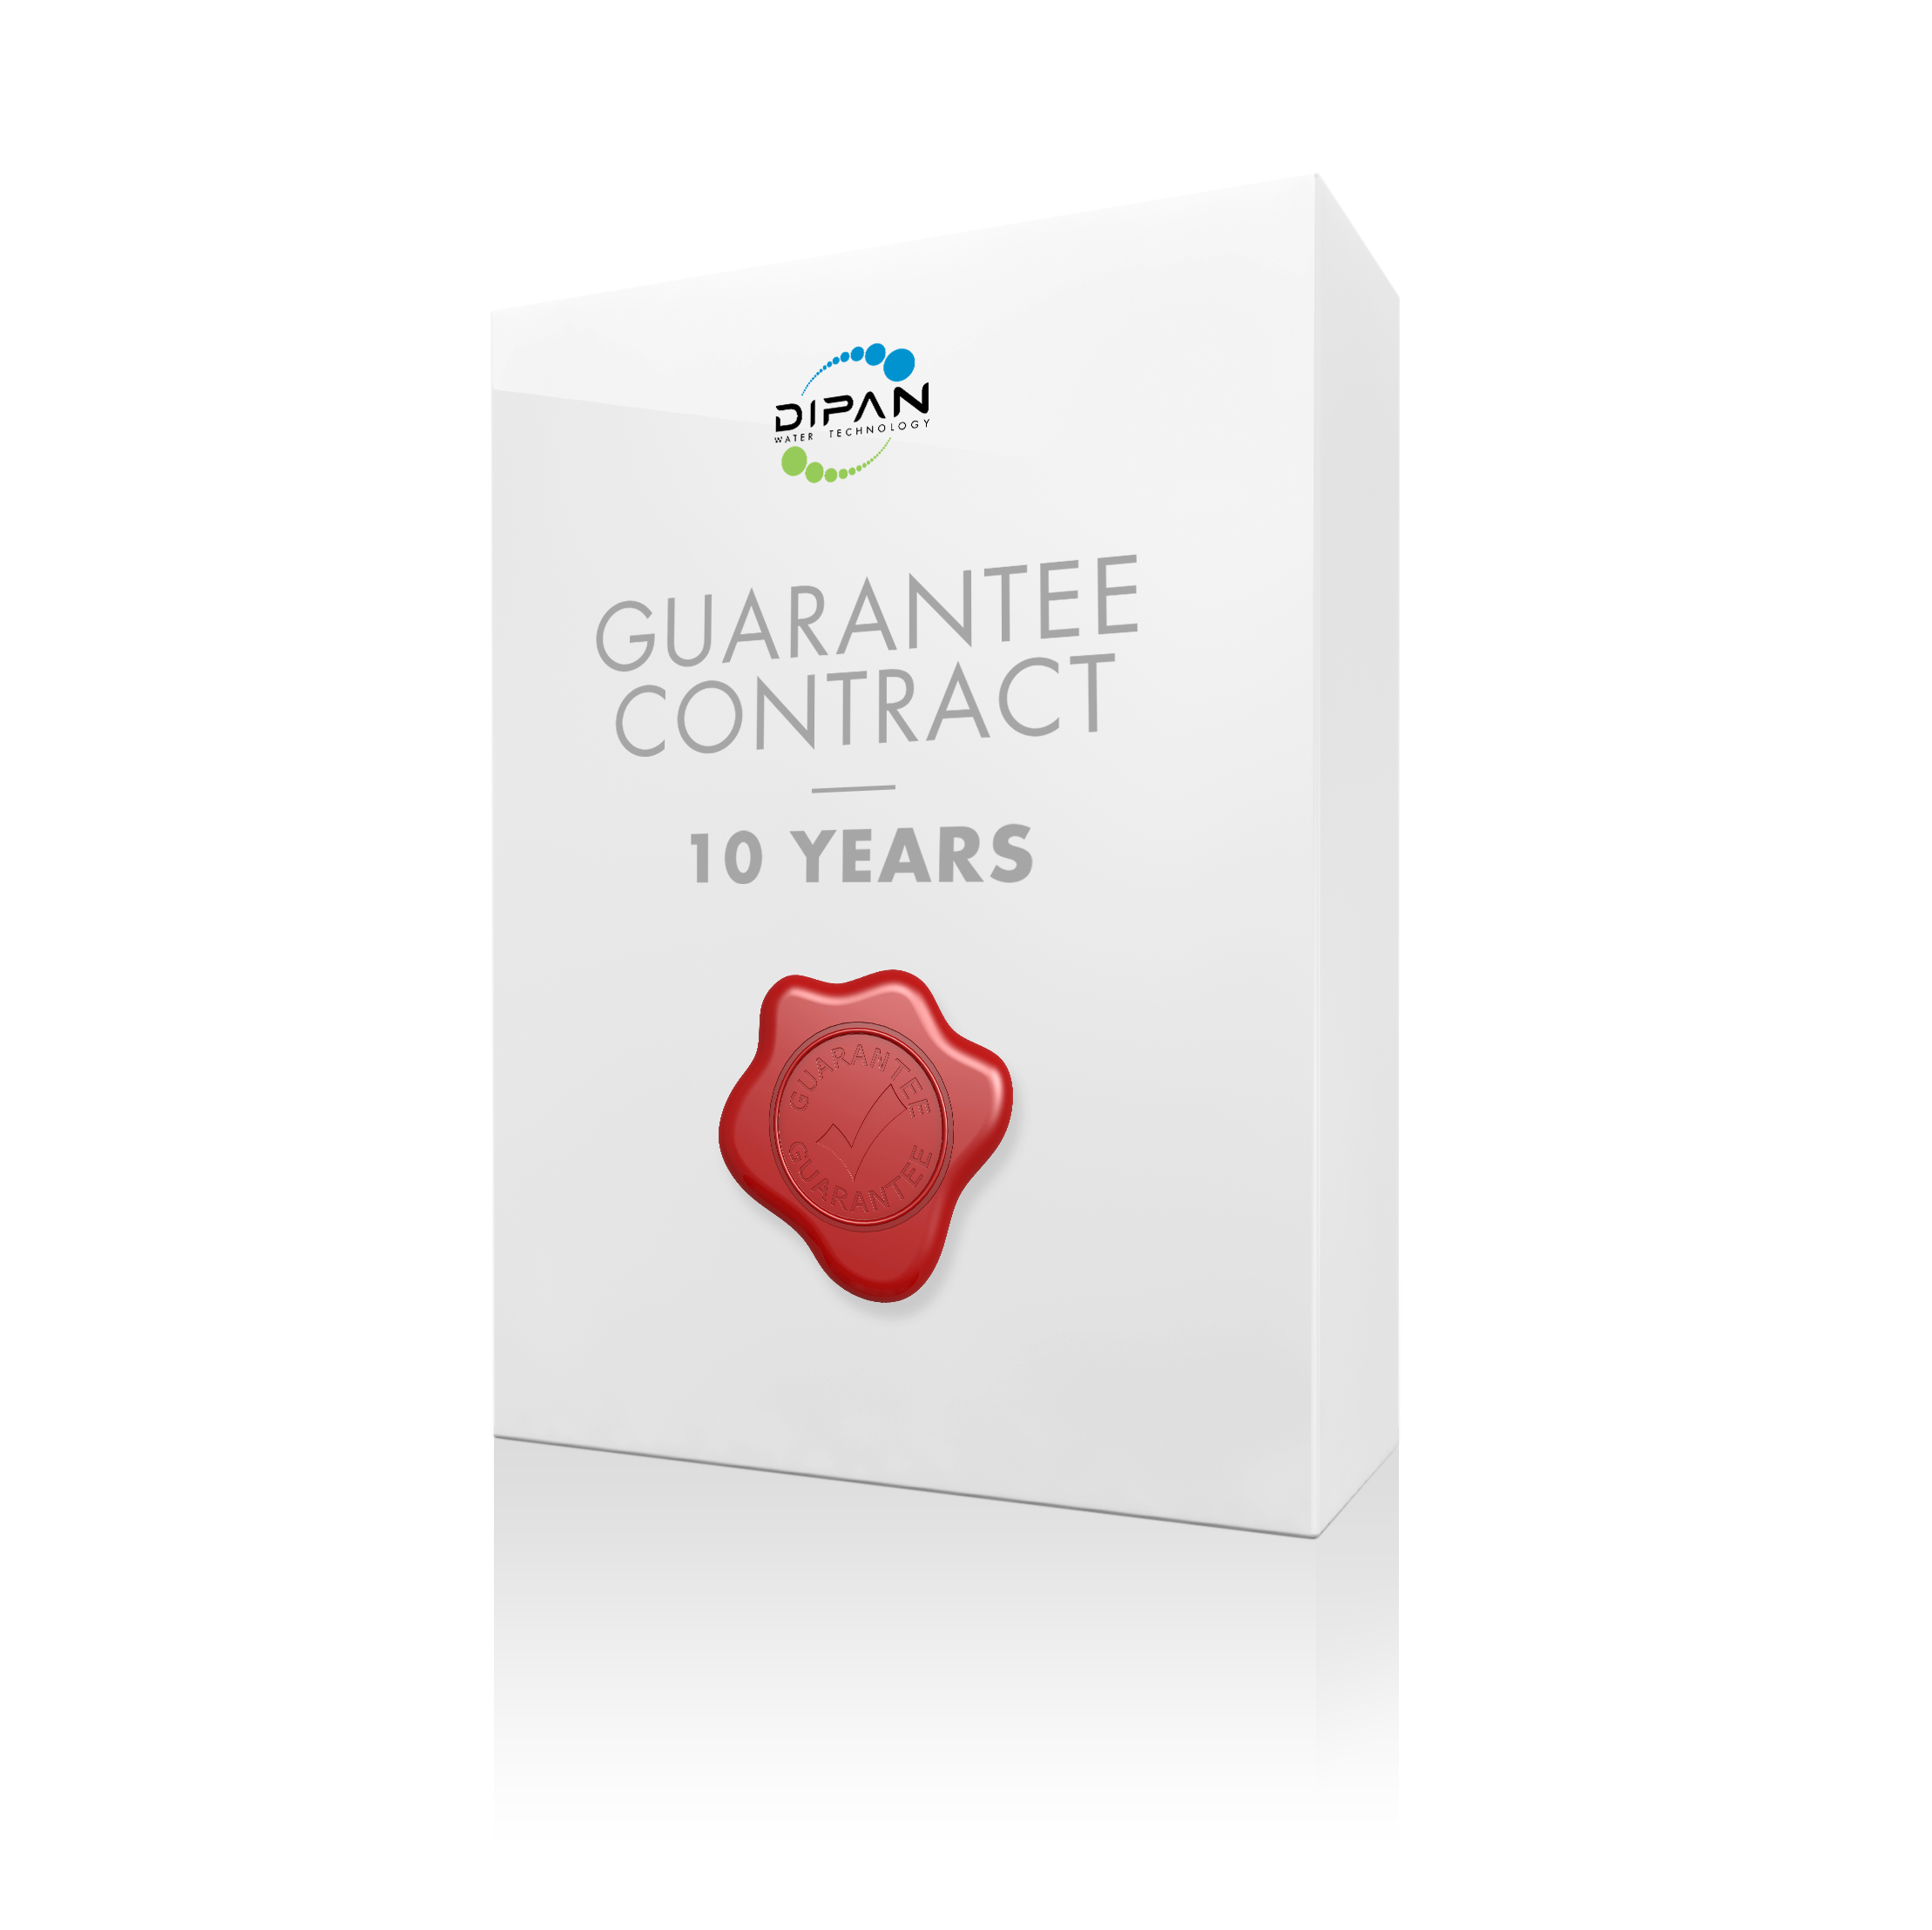 the total guarantee contract